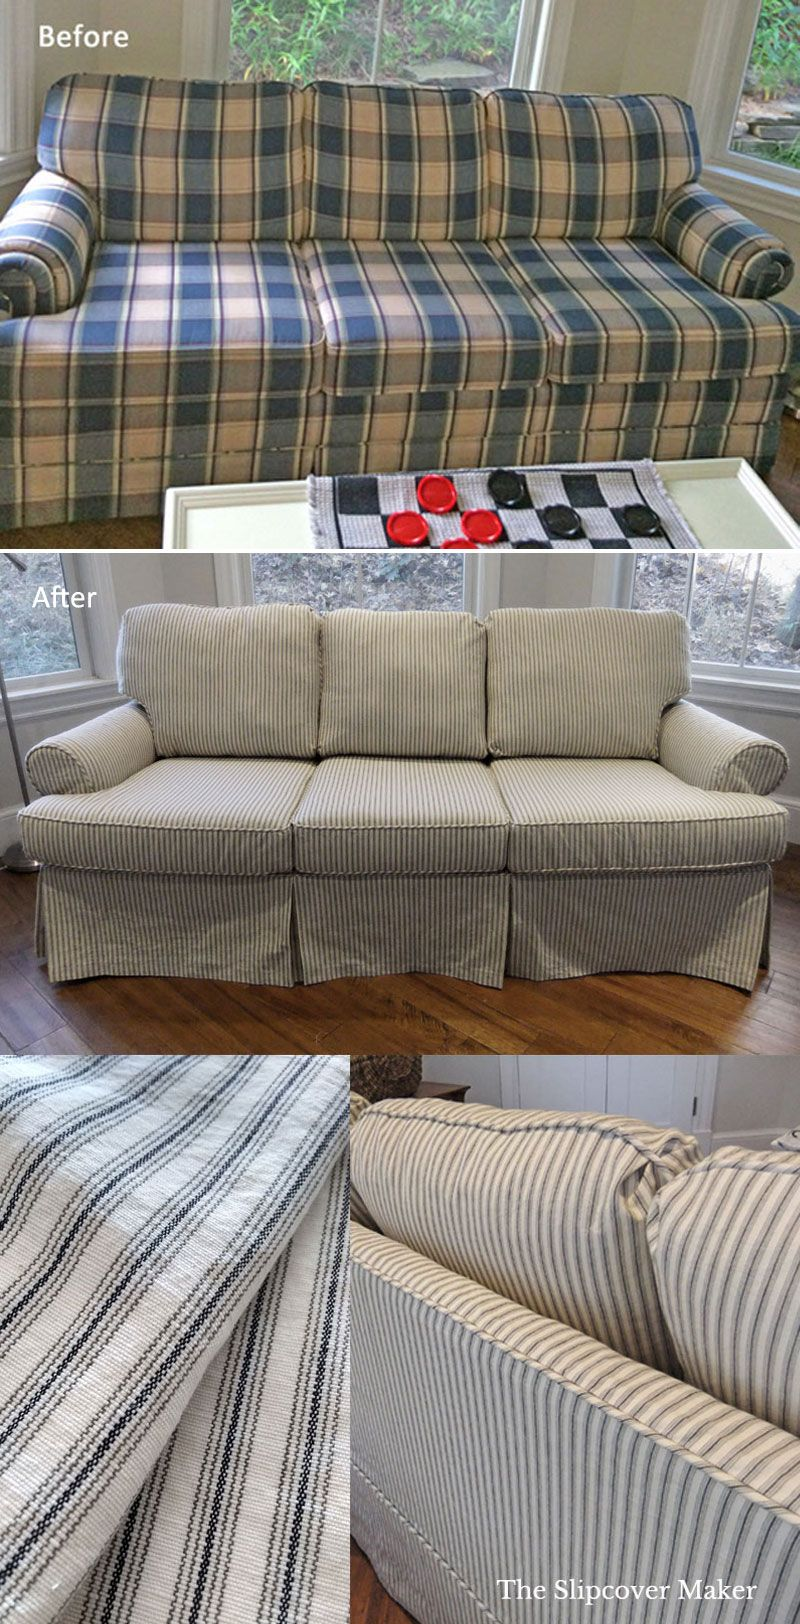 3 Slipcover Design Tips For Updating Your Old Sleeper Sofa Diy Sofa Cover Diy Sofa Diy Furniture Couch